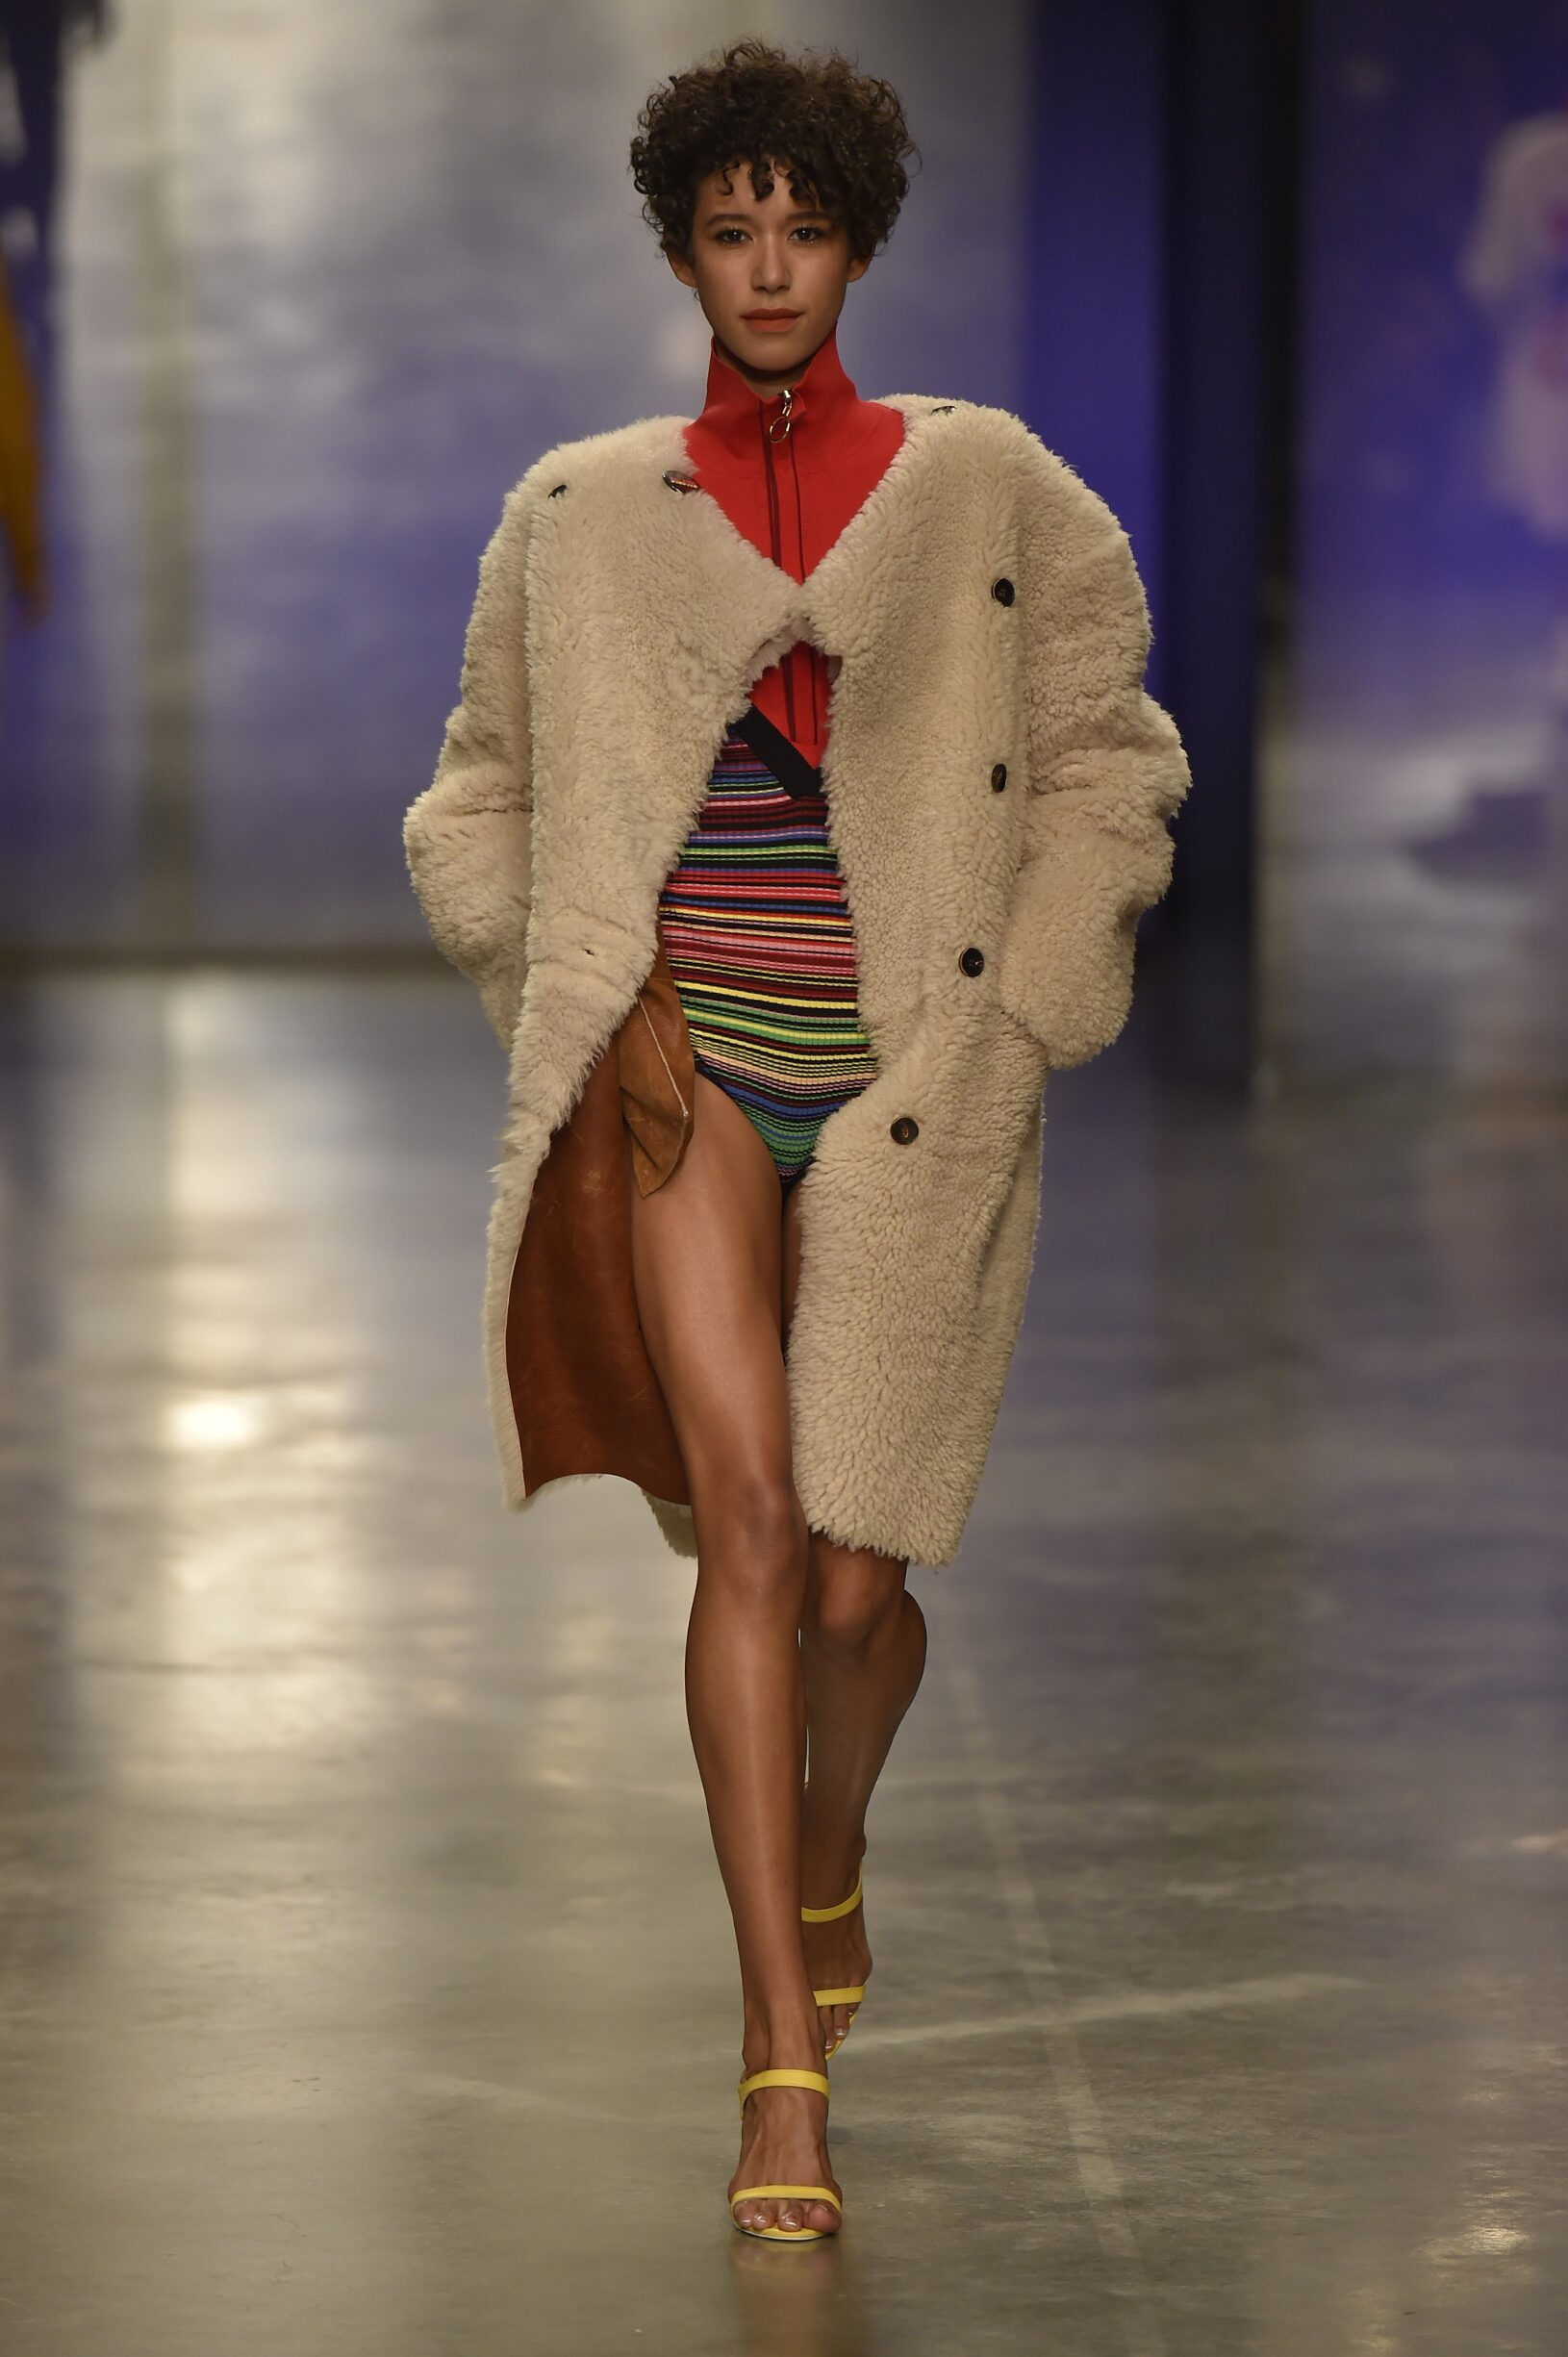 Topshop Unique Fall Winter 2017 Womens Collection London Fashion Week